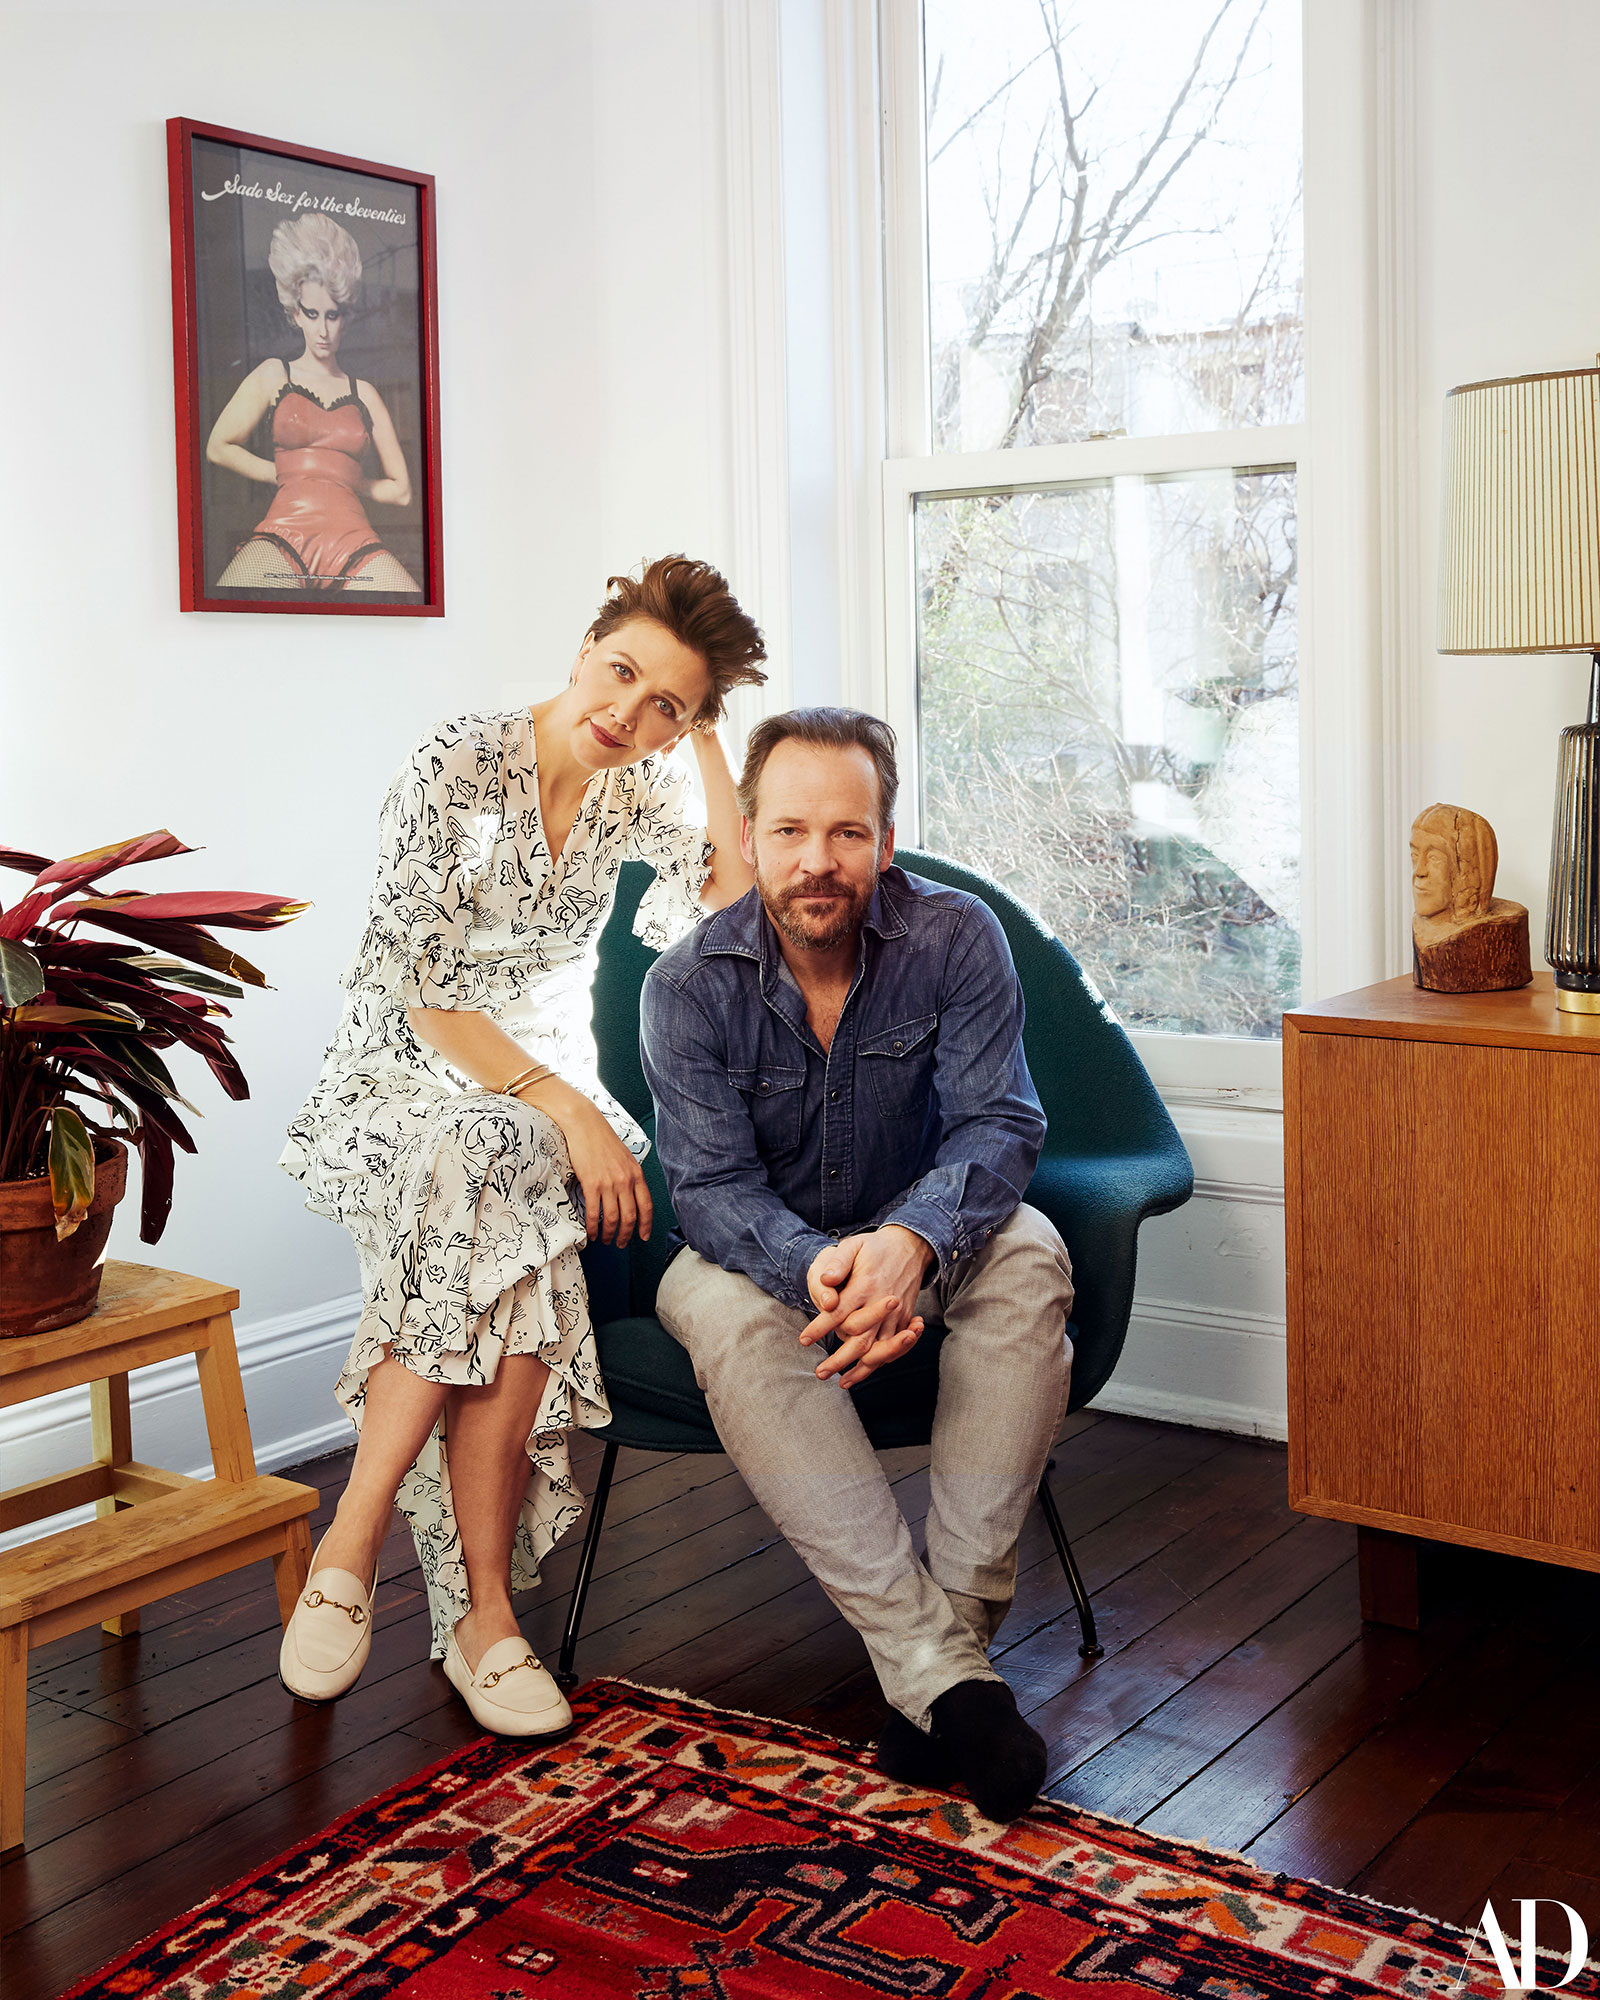 Maggie Gyllenhaal Shares Photos of Her Home - Maggie Gyllenhaal